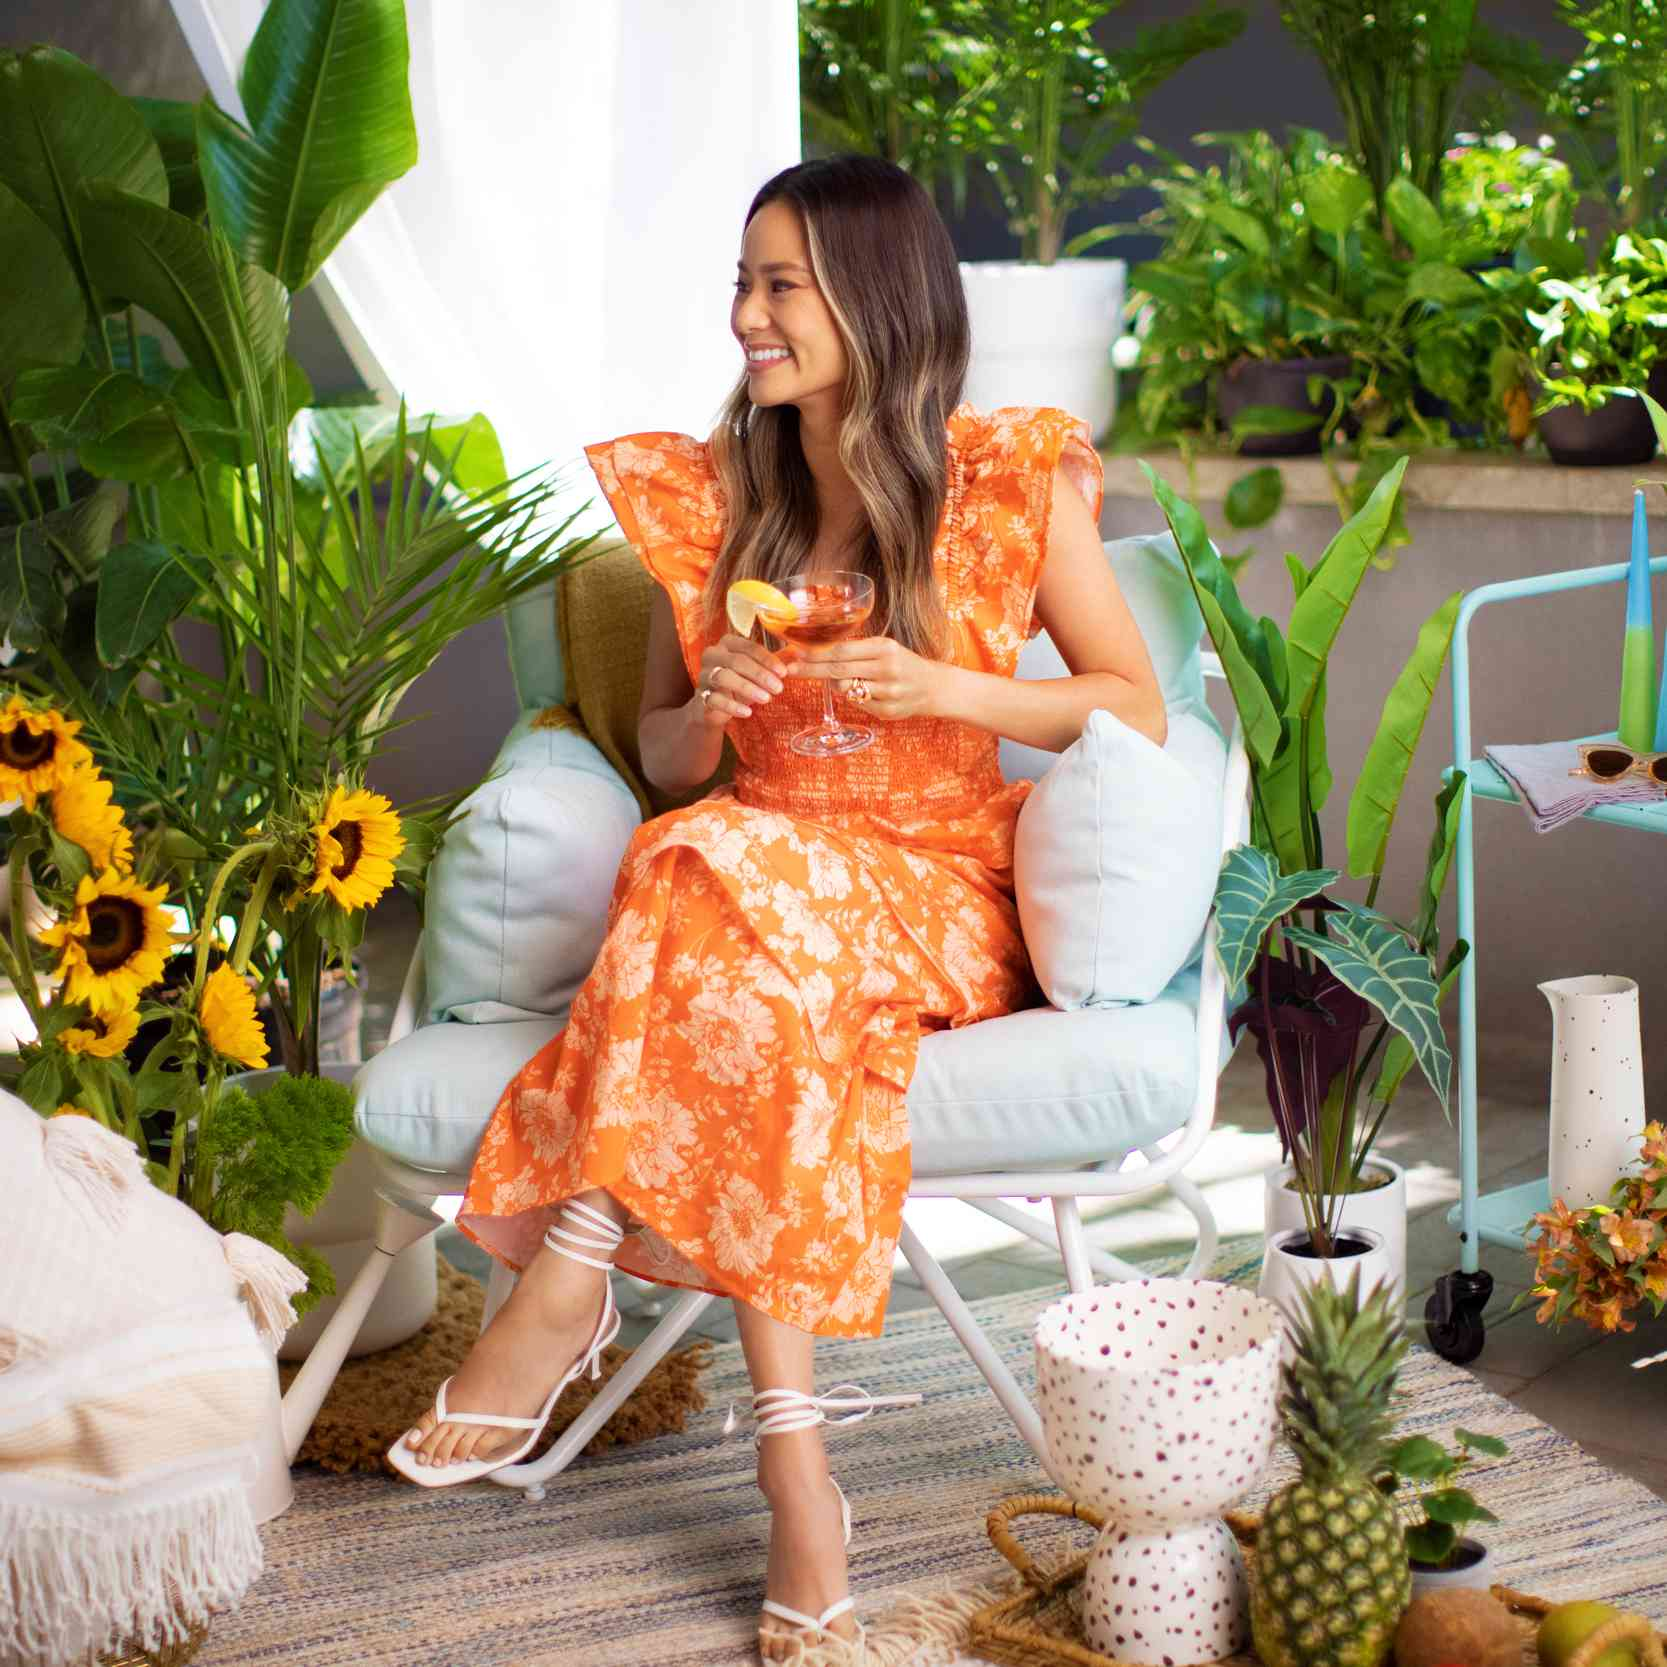 Jamie Chung poses on a mint green chair next to a mint green bar cart